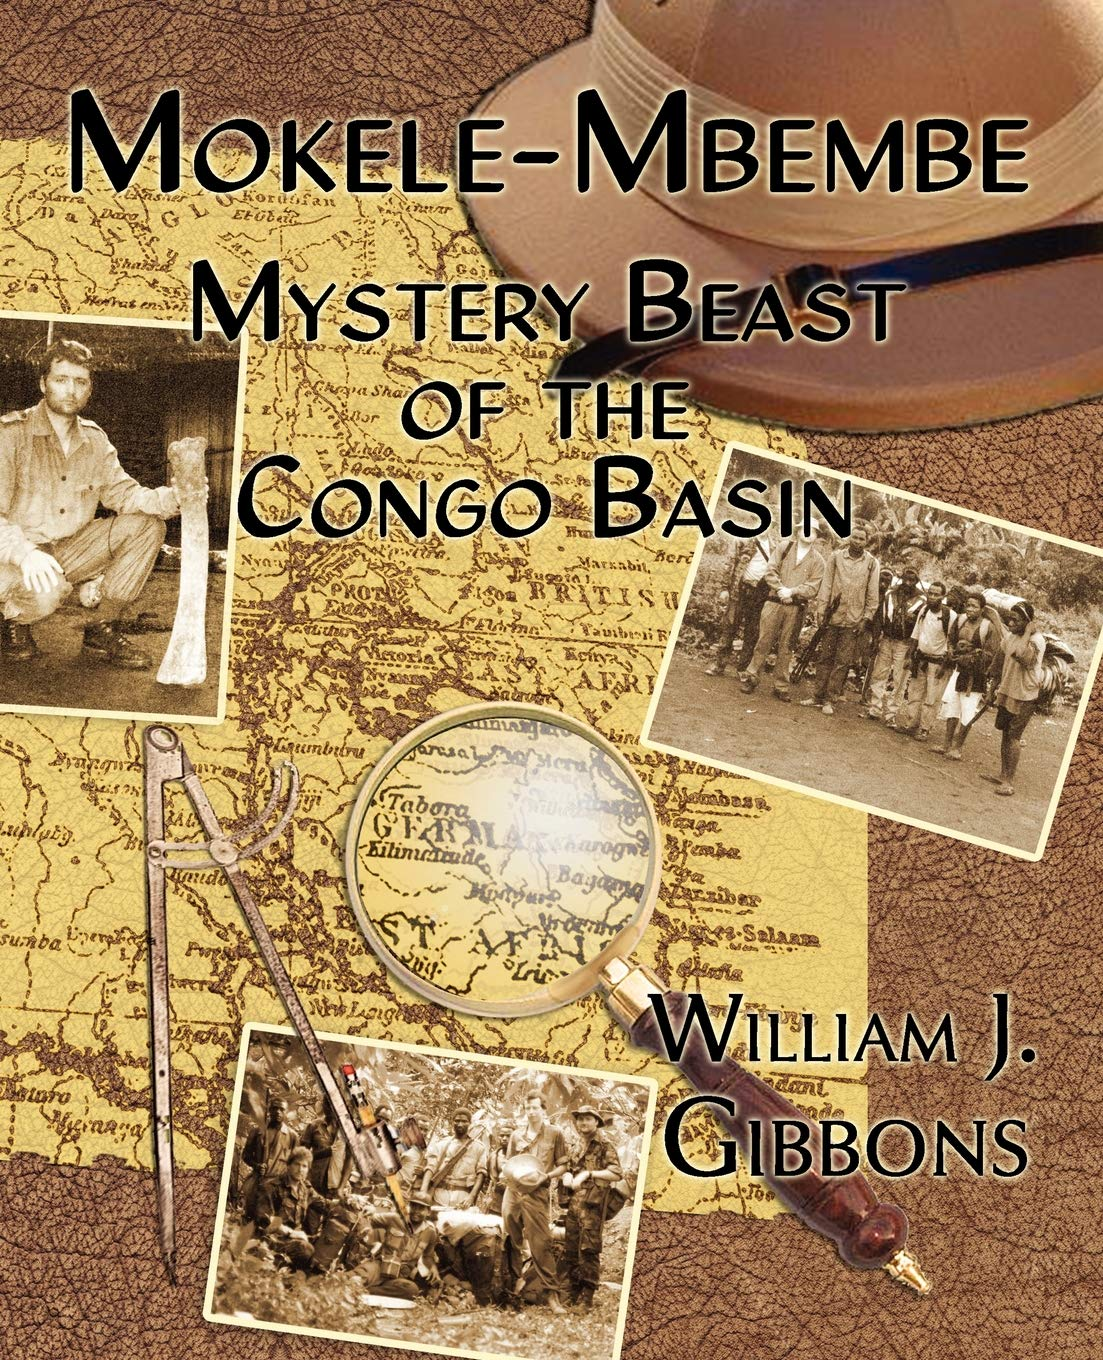 William J Gibbons - Mokele-Mbembe: Mystery Beast of the Congo Basin